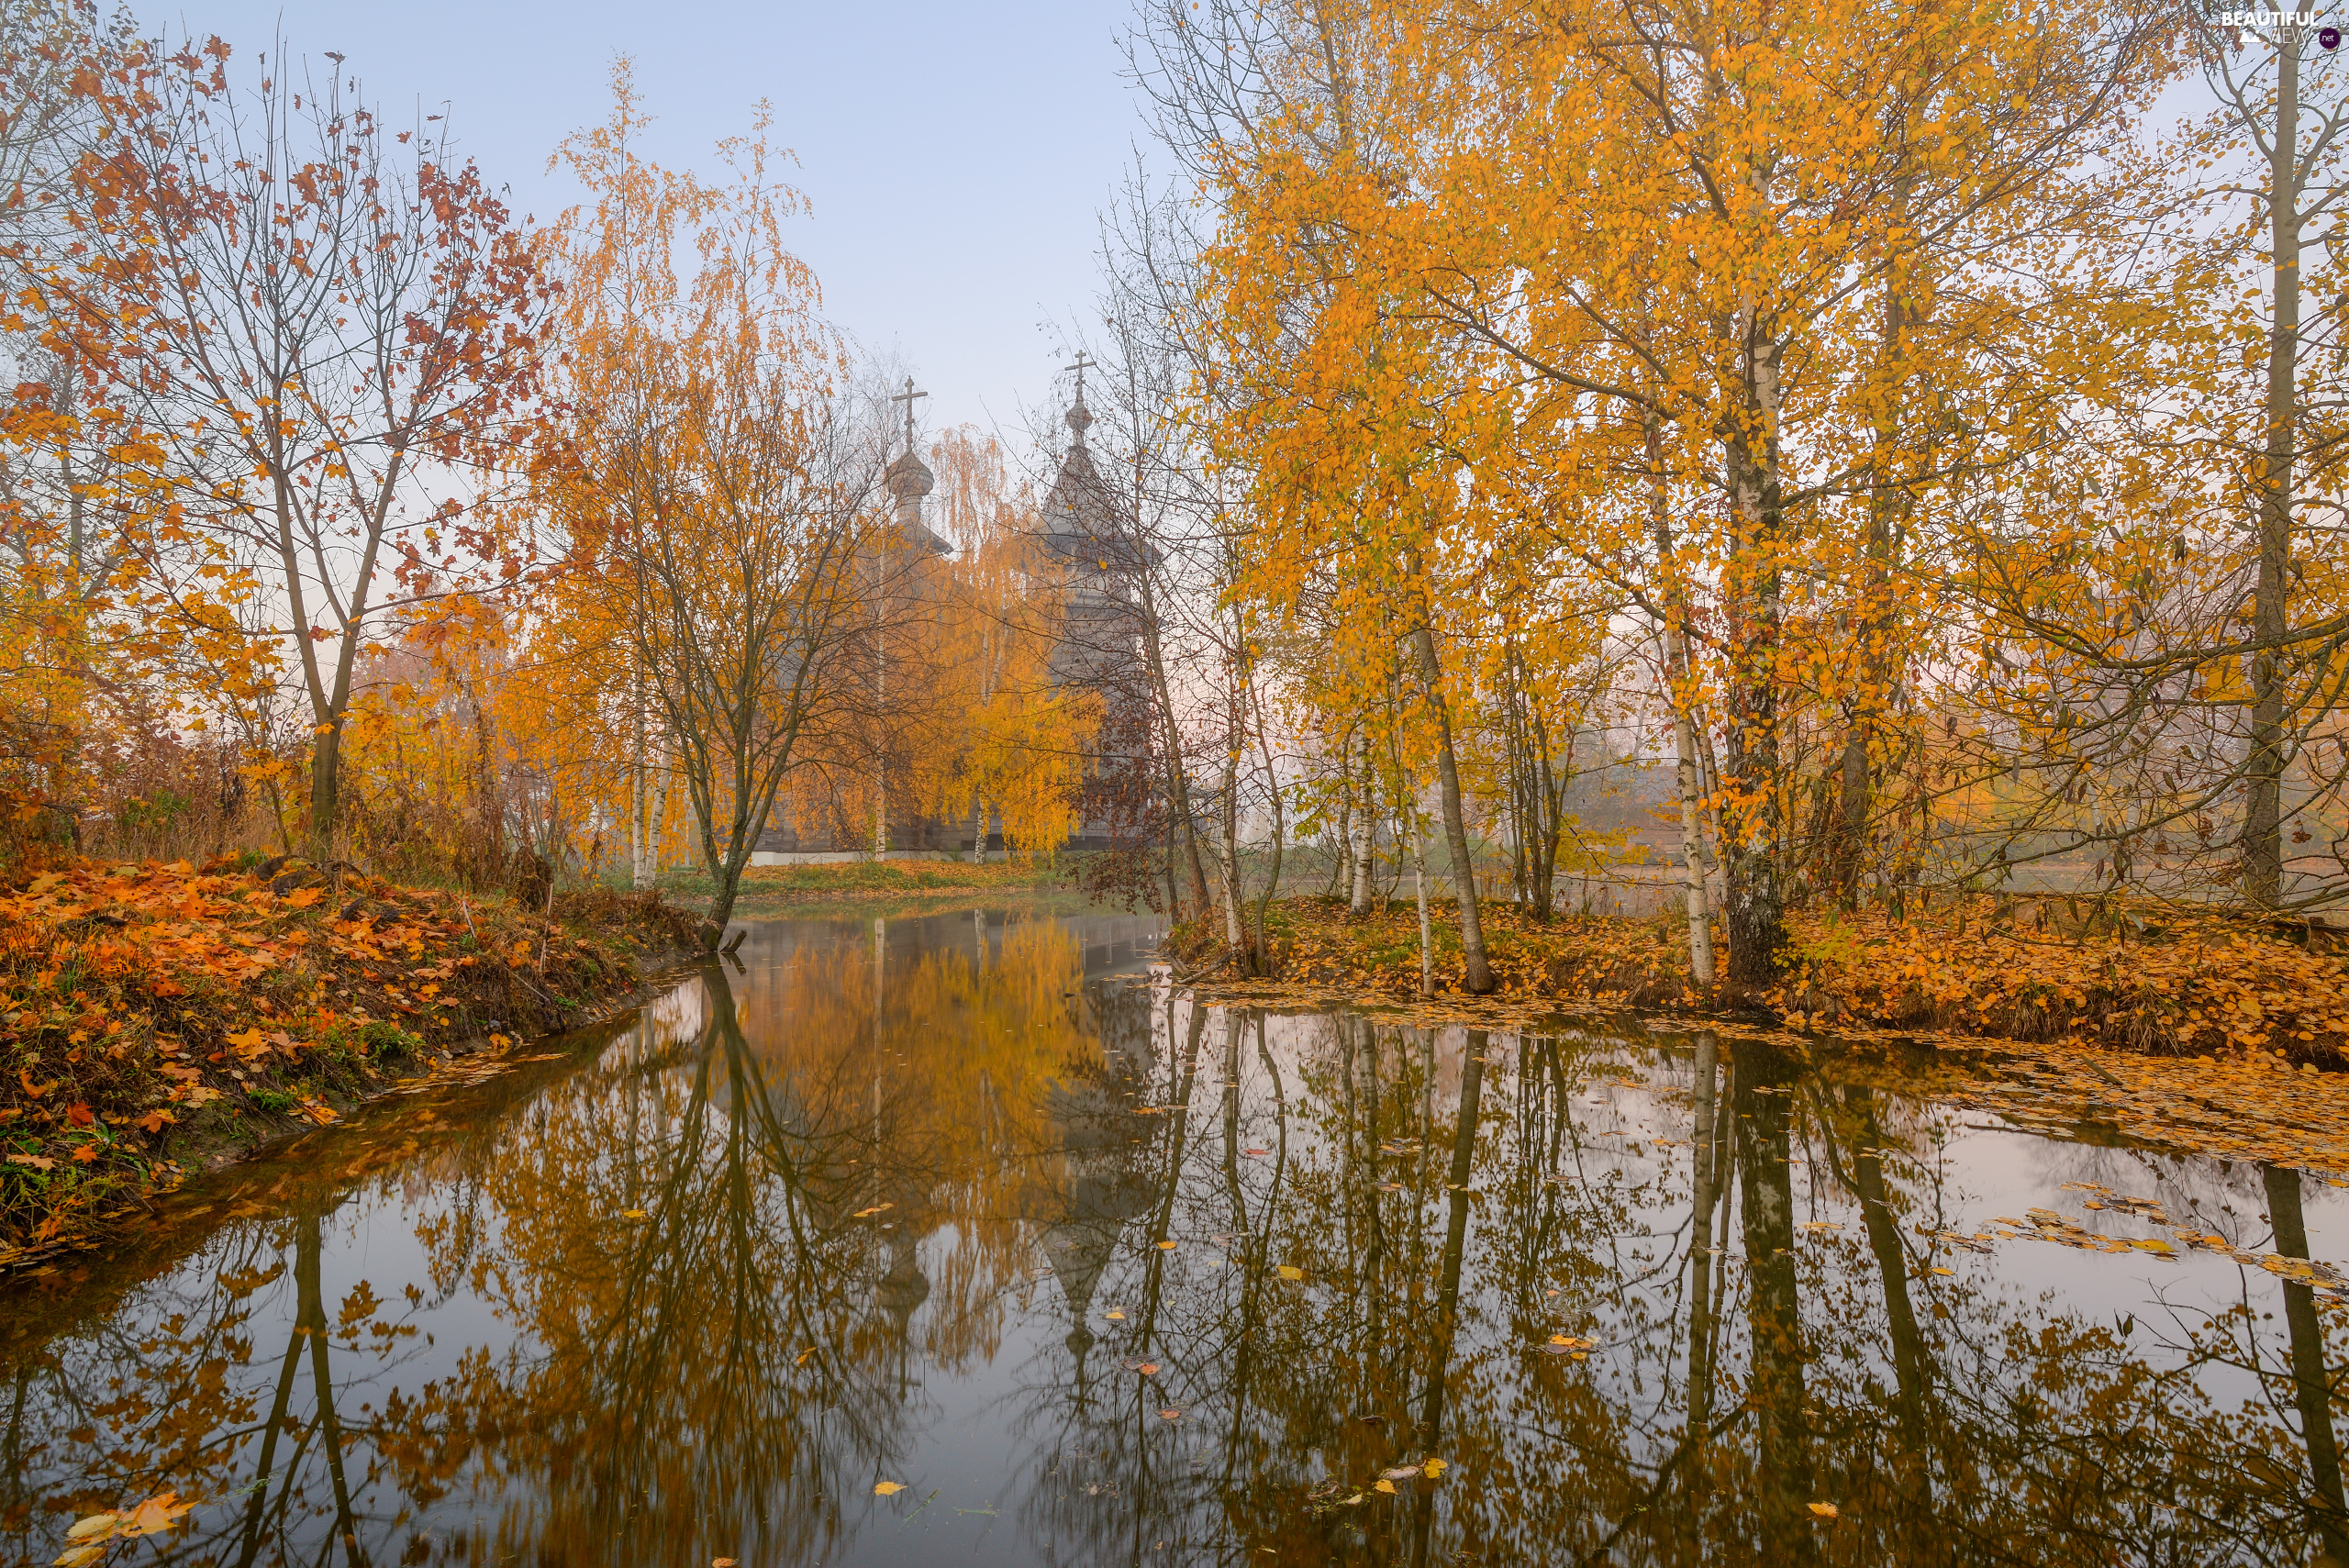 Cerkiew, autumn, viewes, birch, trees, Pond - car